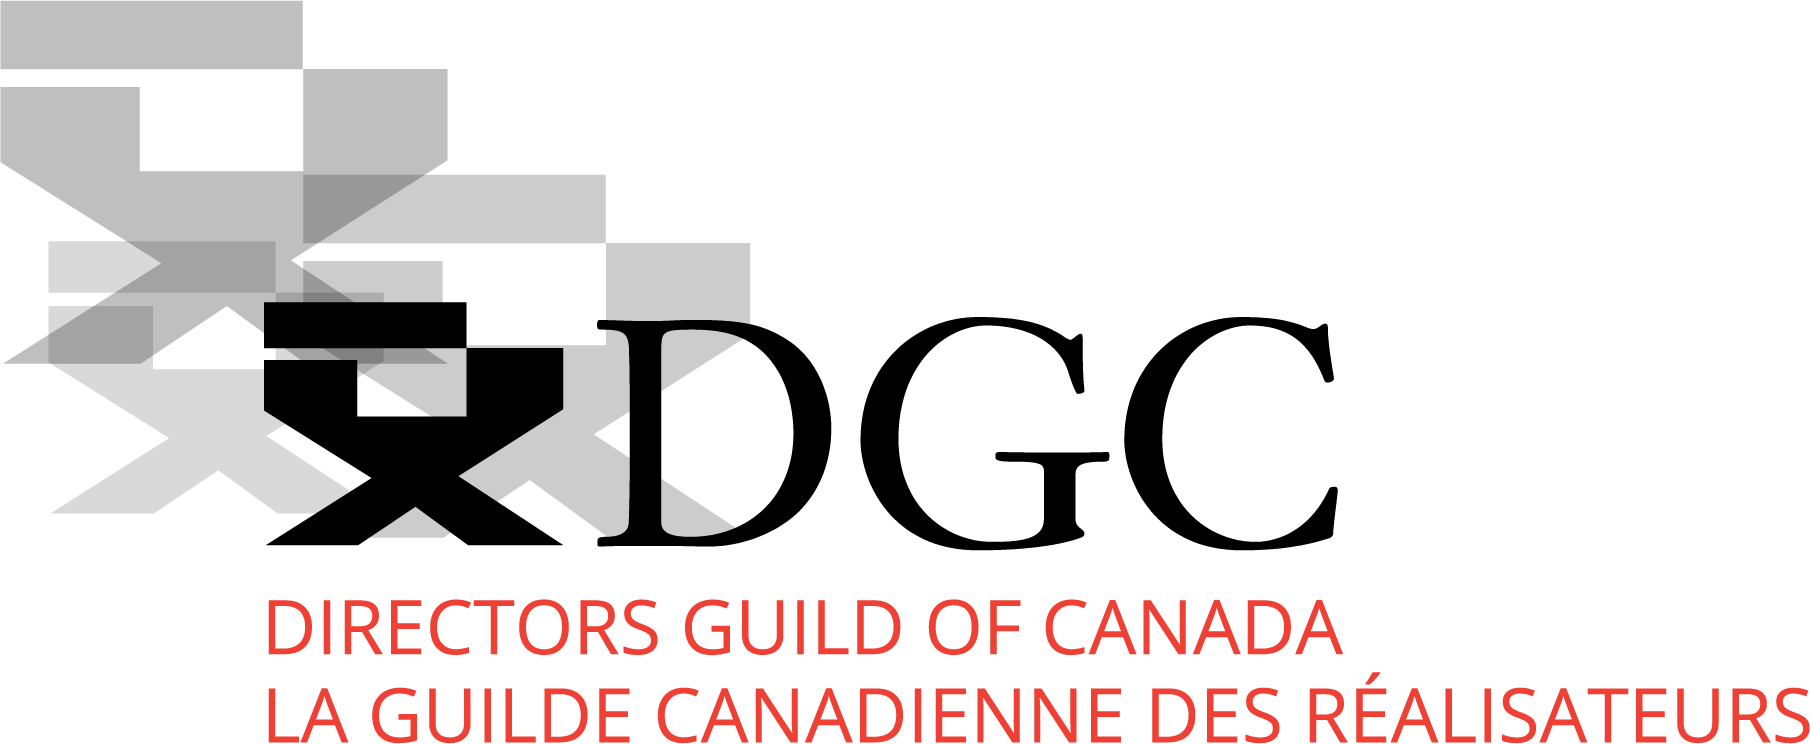 Directors Guild of Canada - Guild Association Member